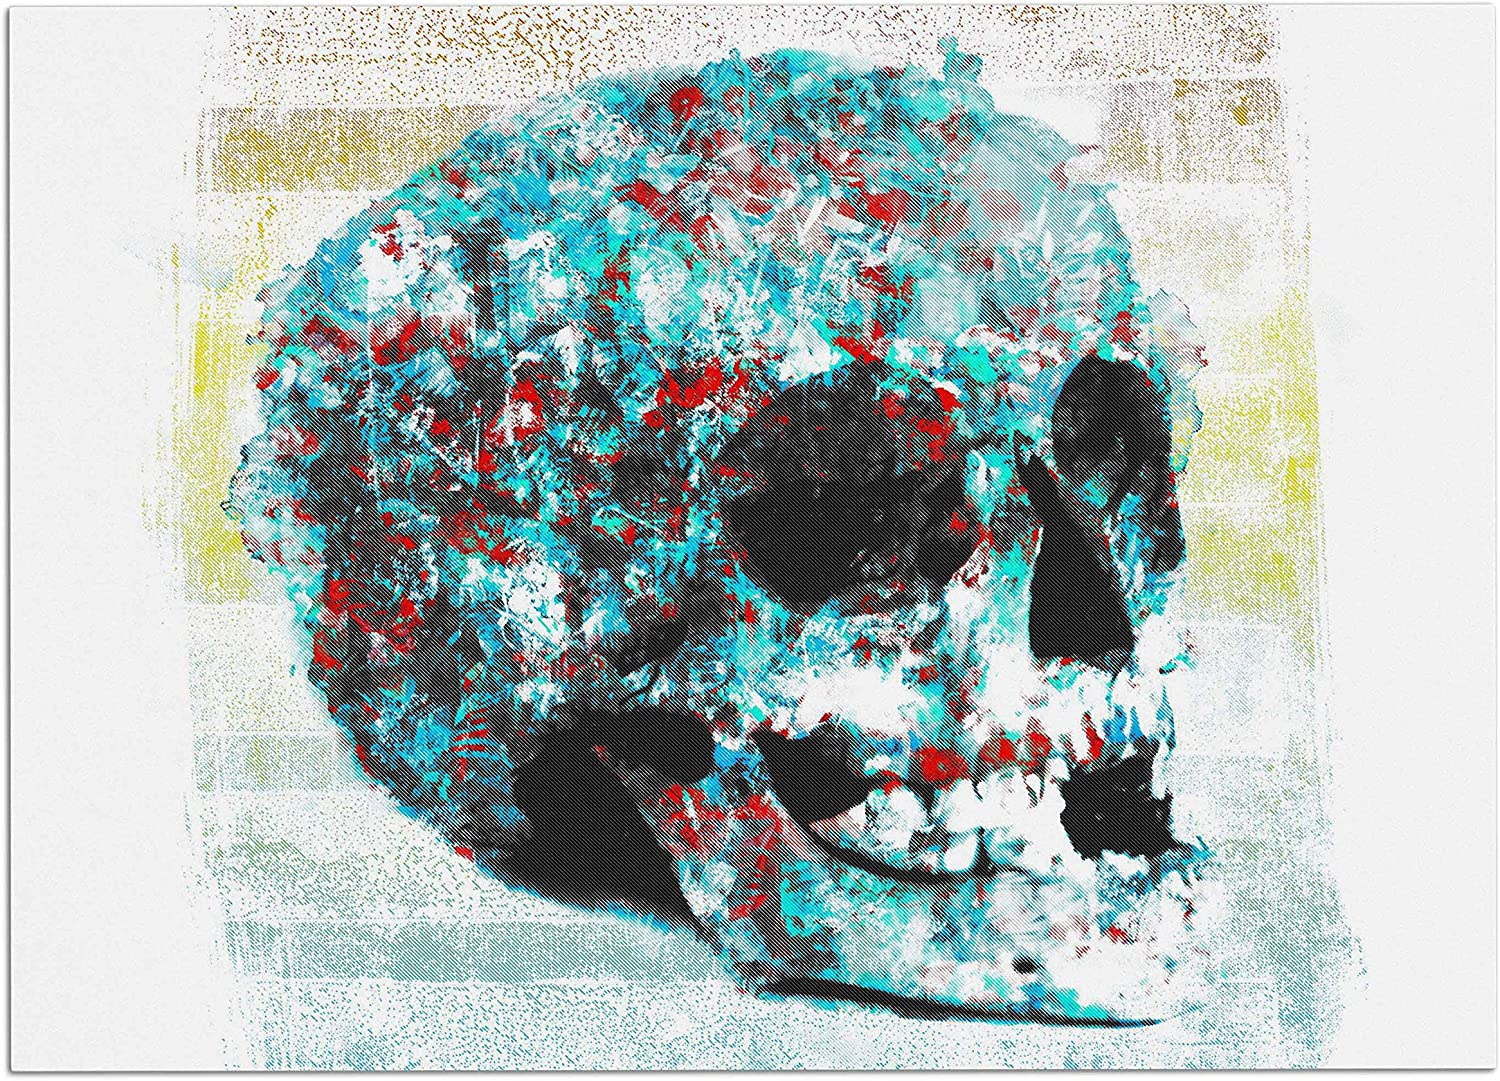 KESS InHouse FH1067ADM02 Frederic LevyHadida Floral Skully 2  Coral Teal Dog Place Mat, 24  x 15